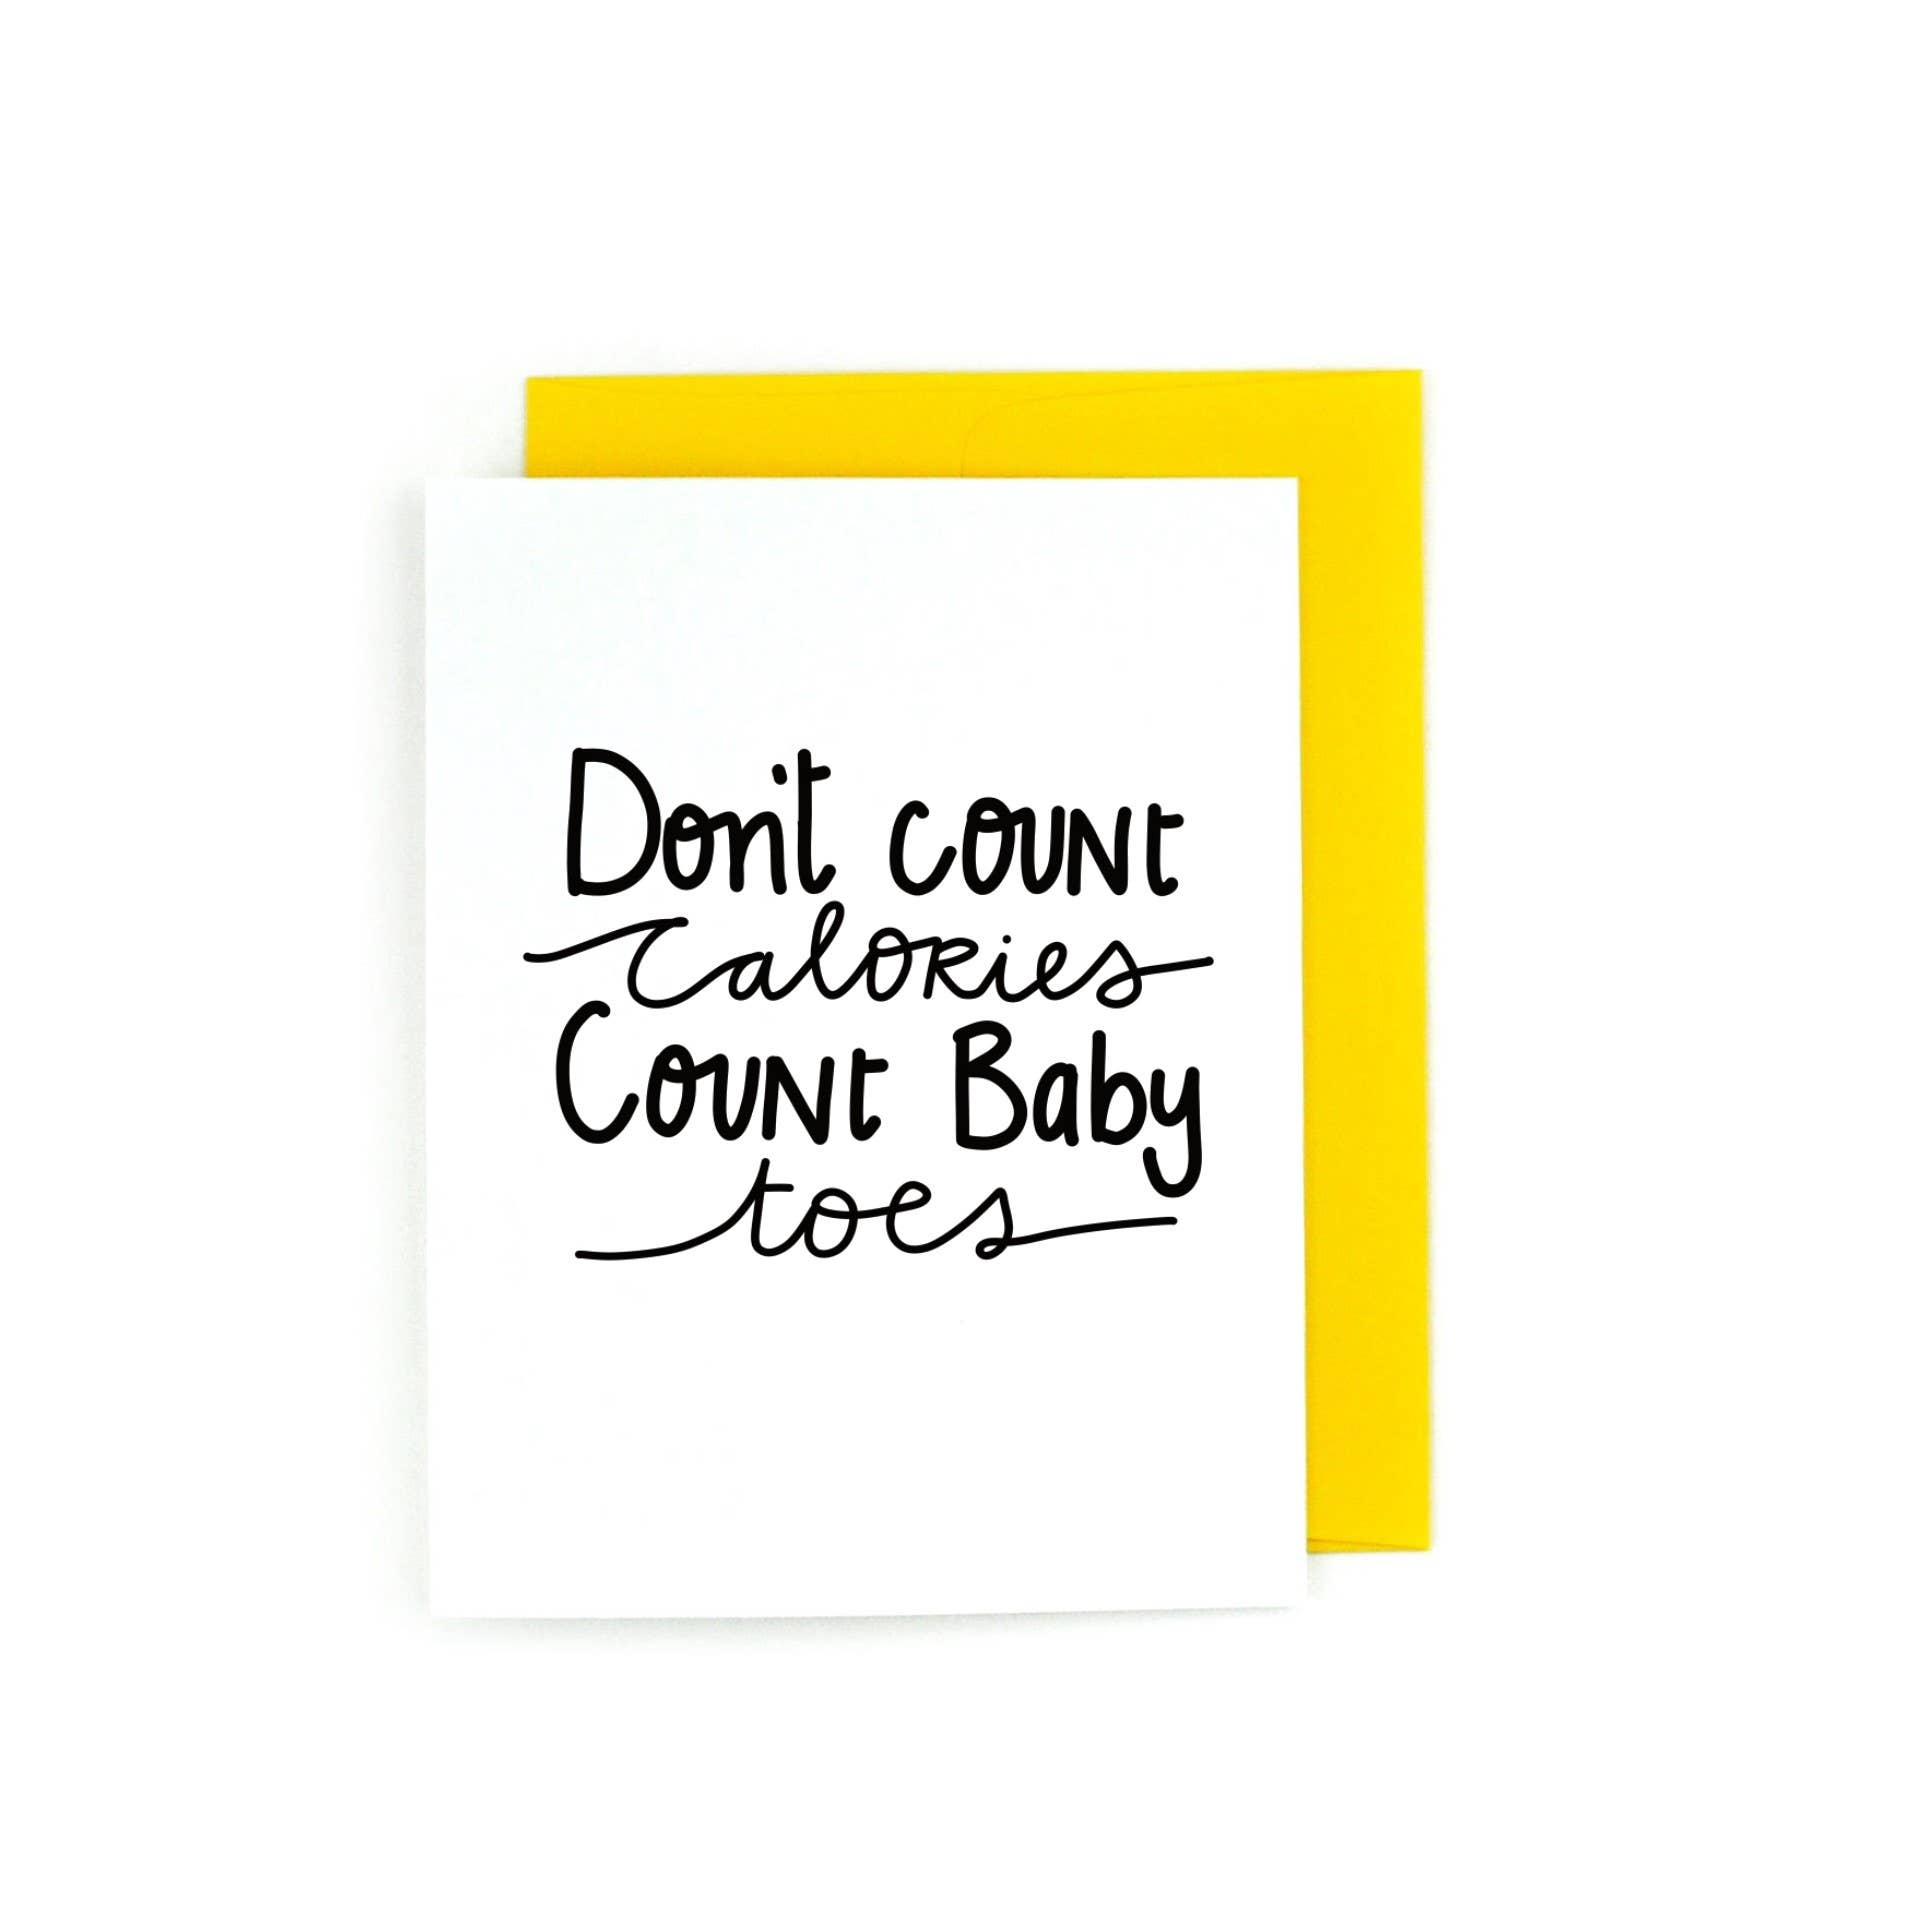 Don't Count Calories, Count Baby Toes   Trada Marketplace